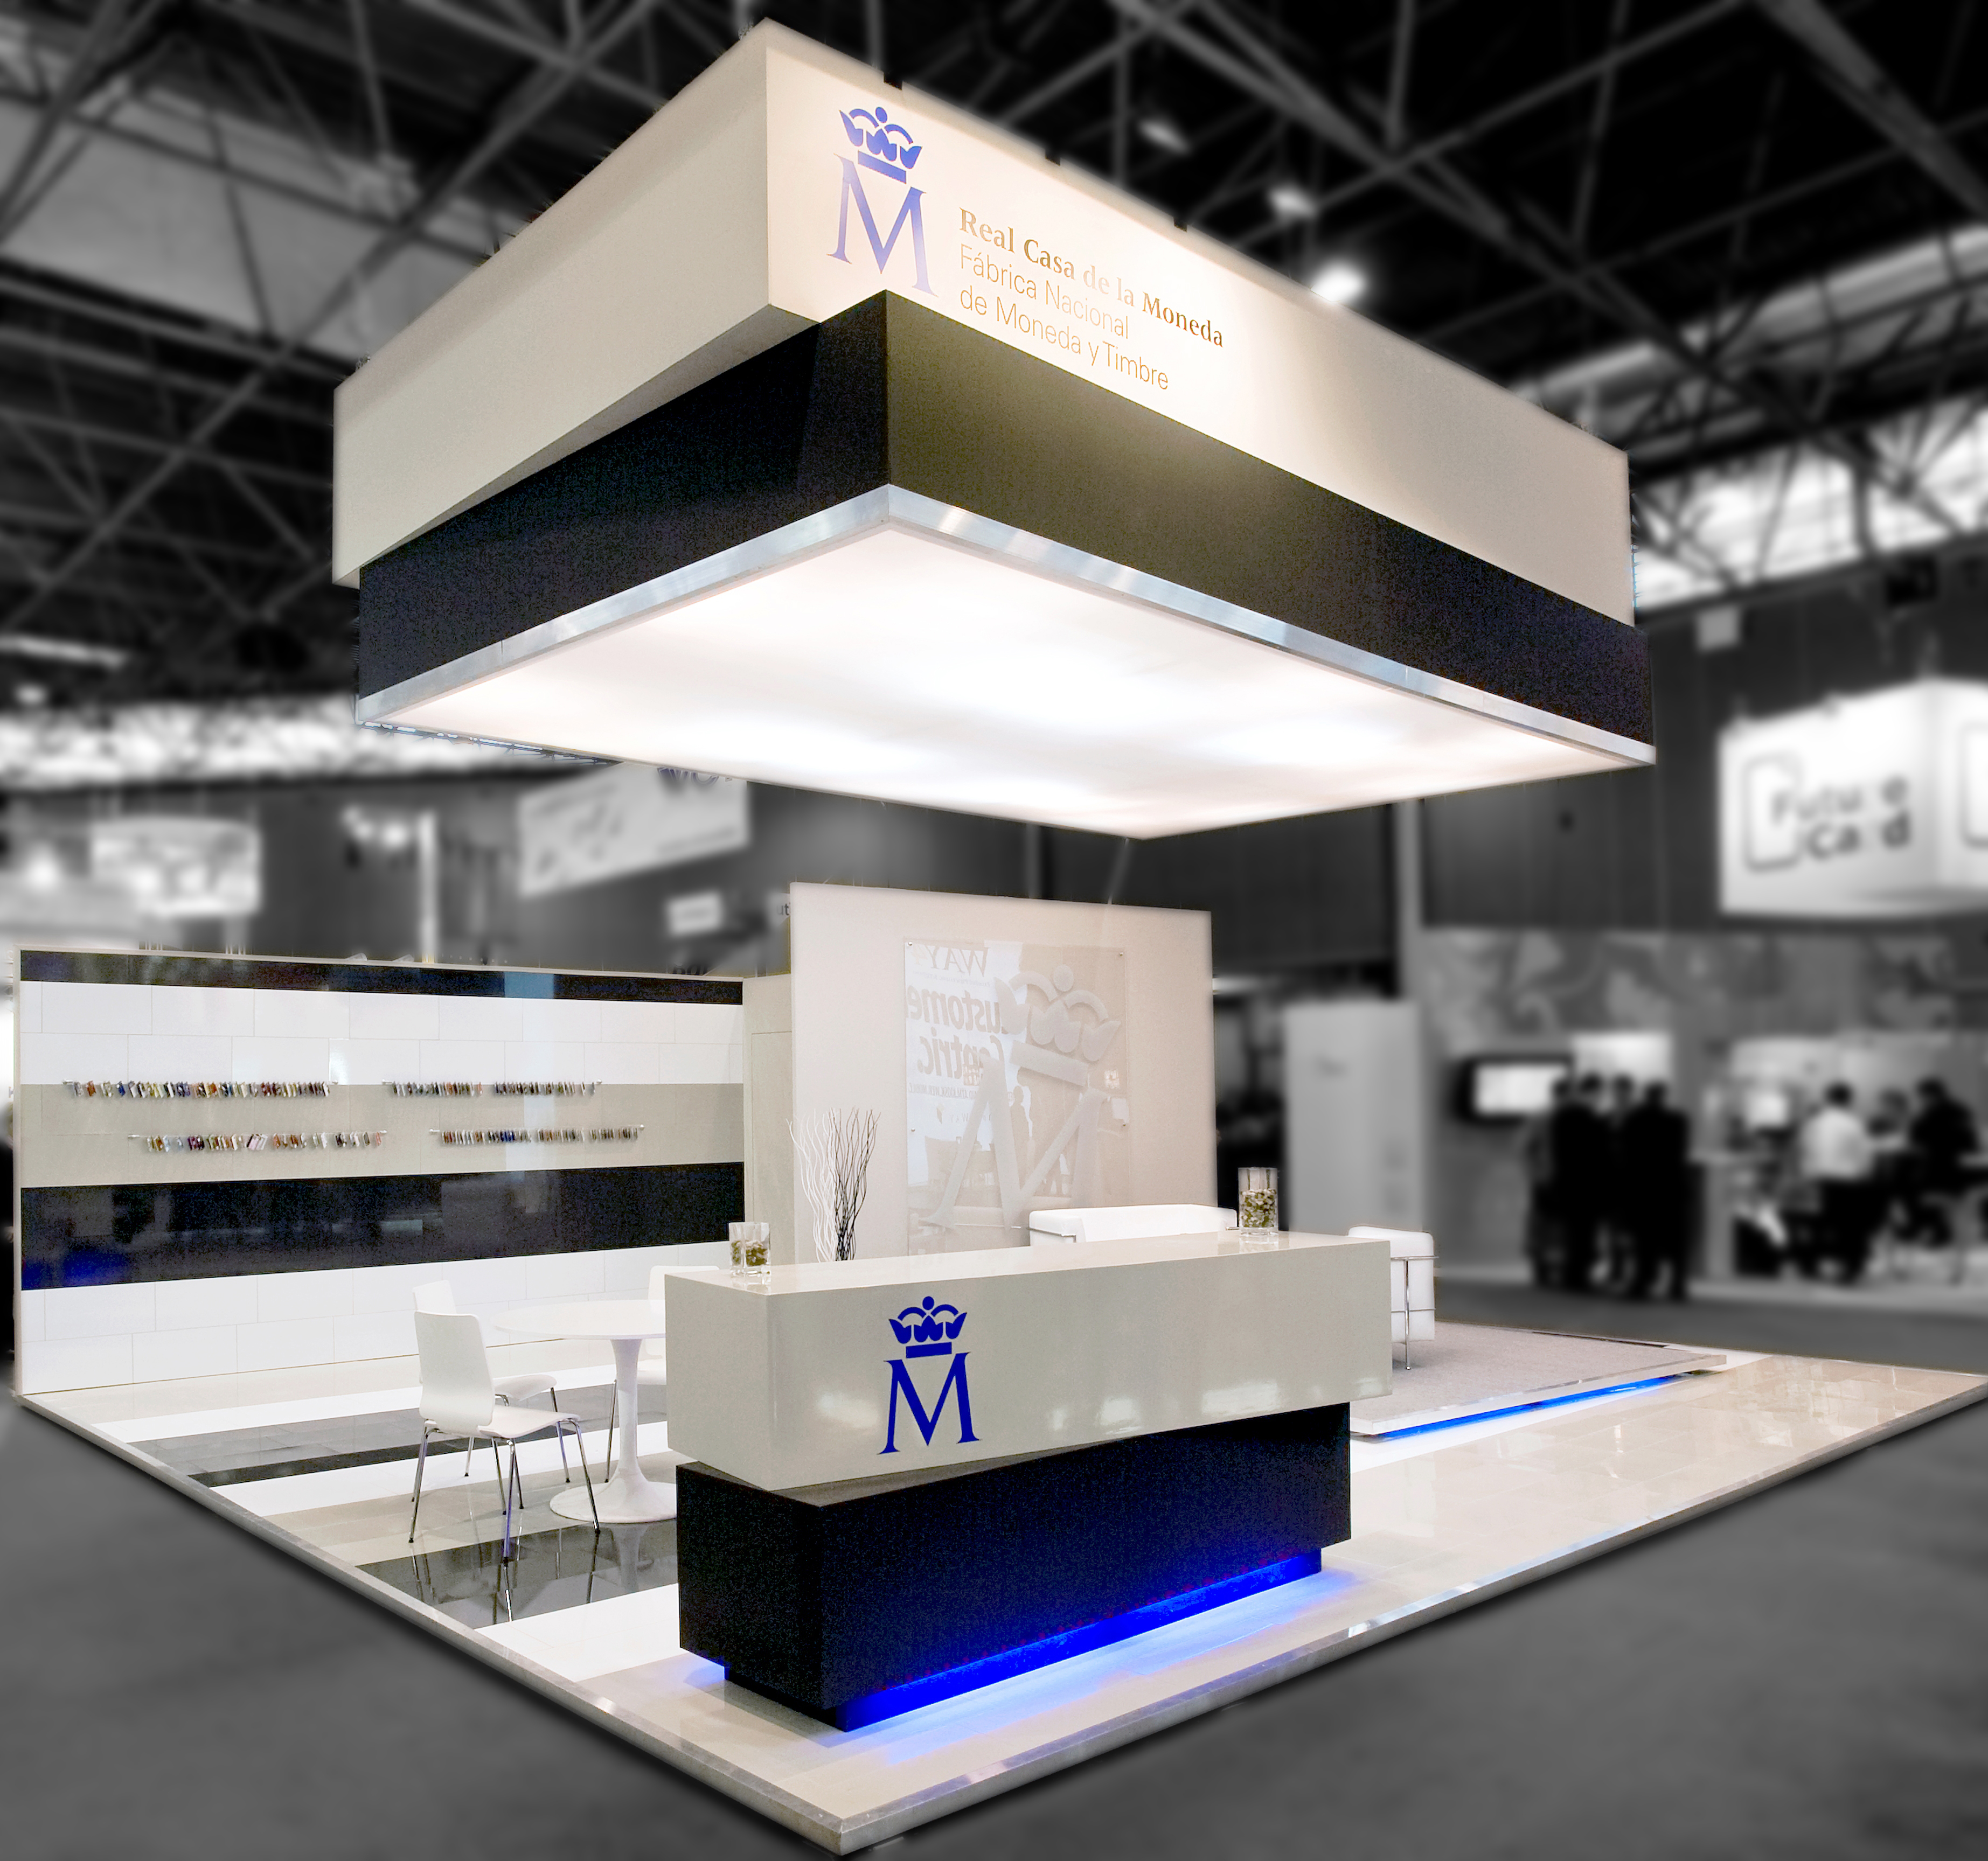 Exhibition Custom Stand Design And Build Di P Madrid Spain